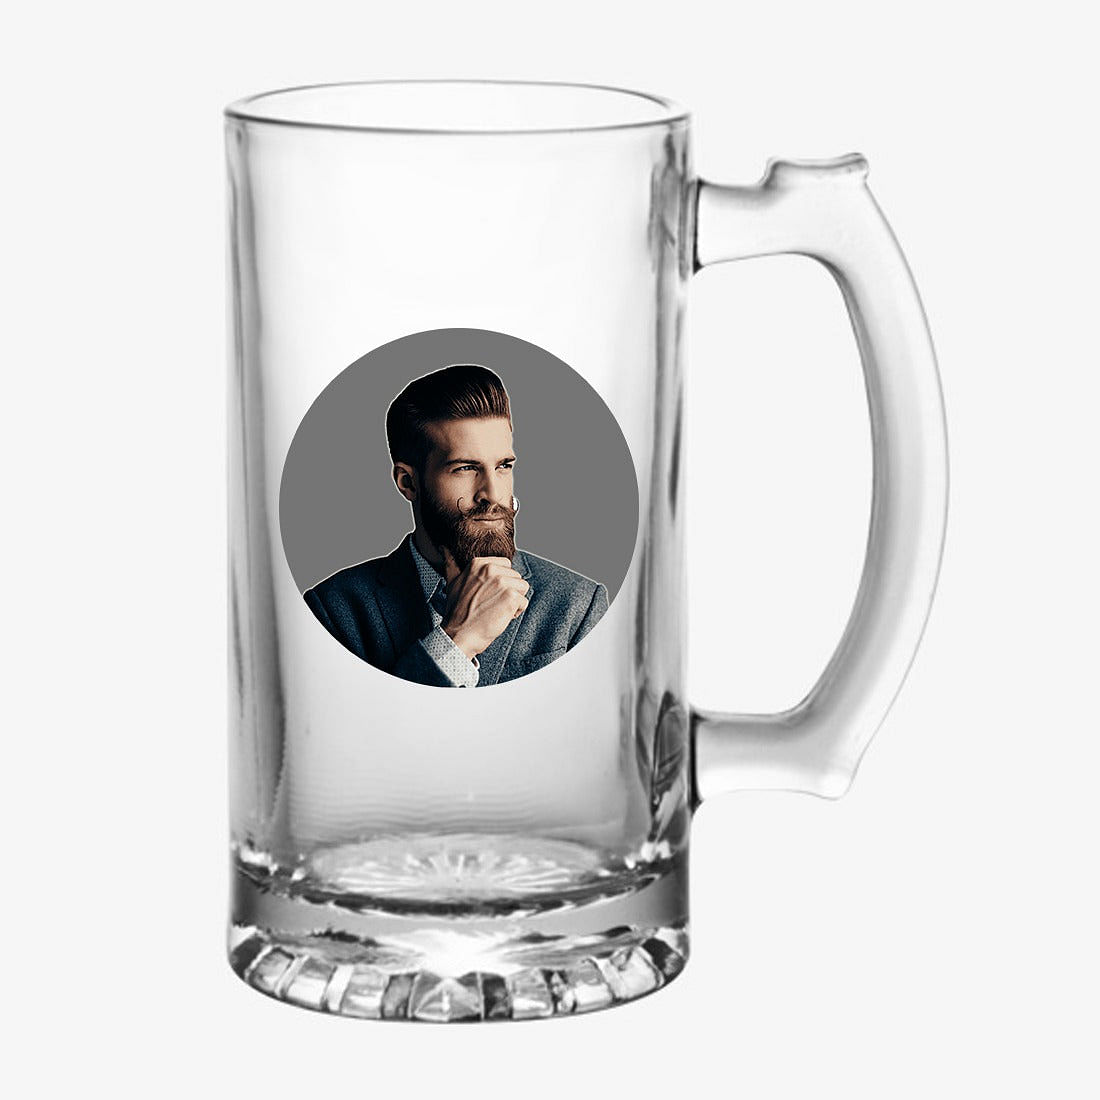 Buy Customized Beer Mug Glass Online